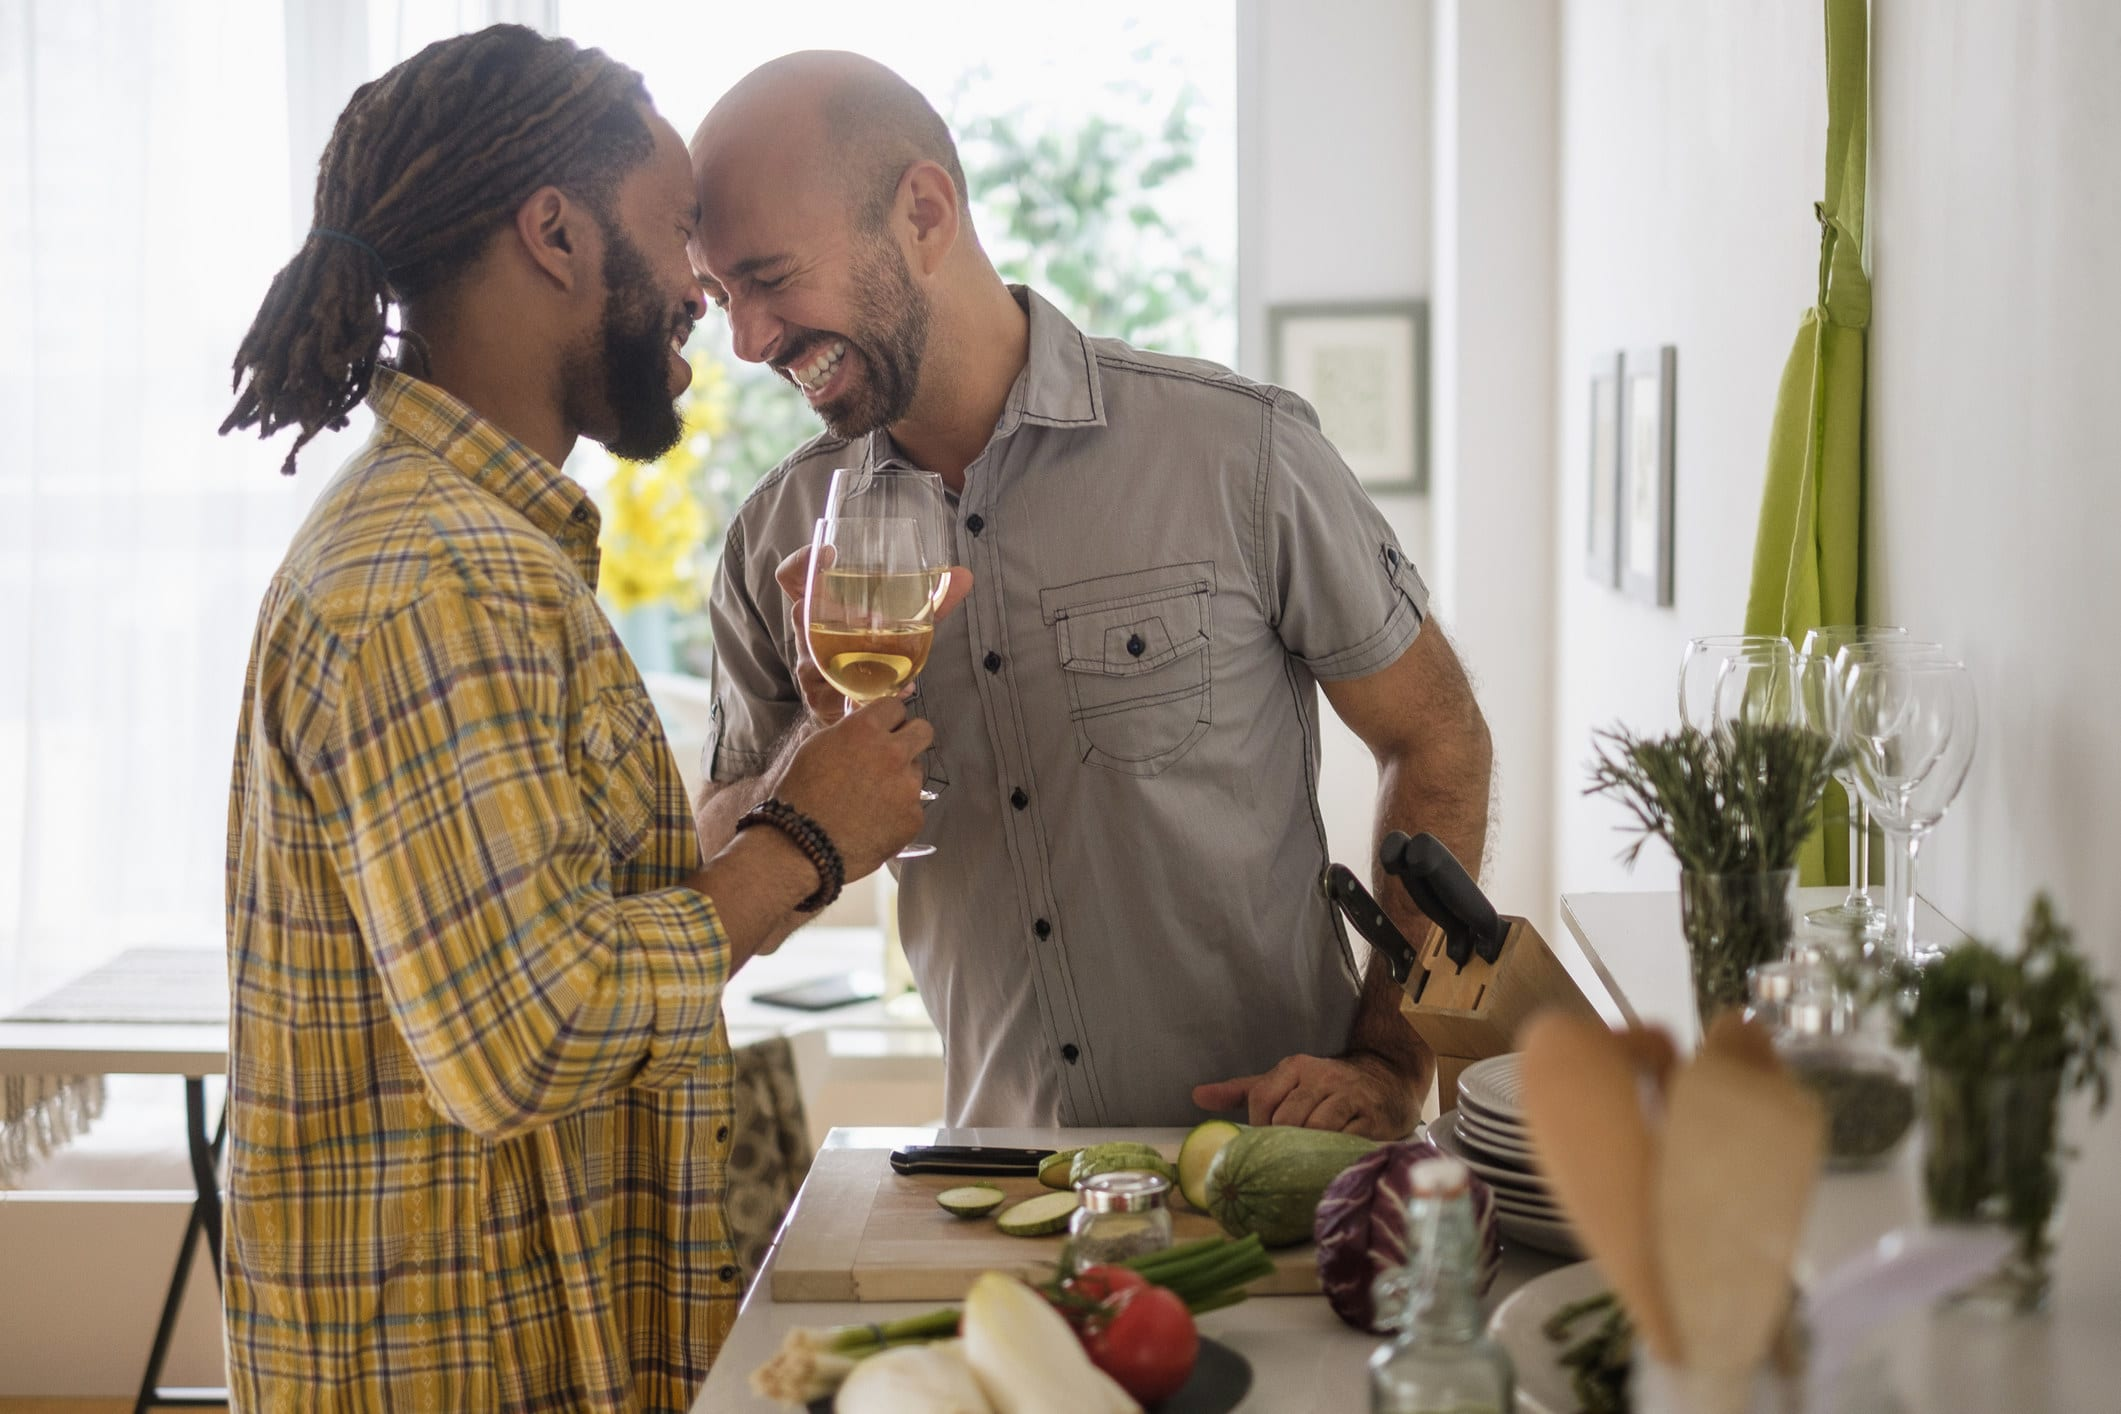 Gay couple laughing over wine in the kitchen